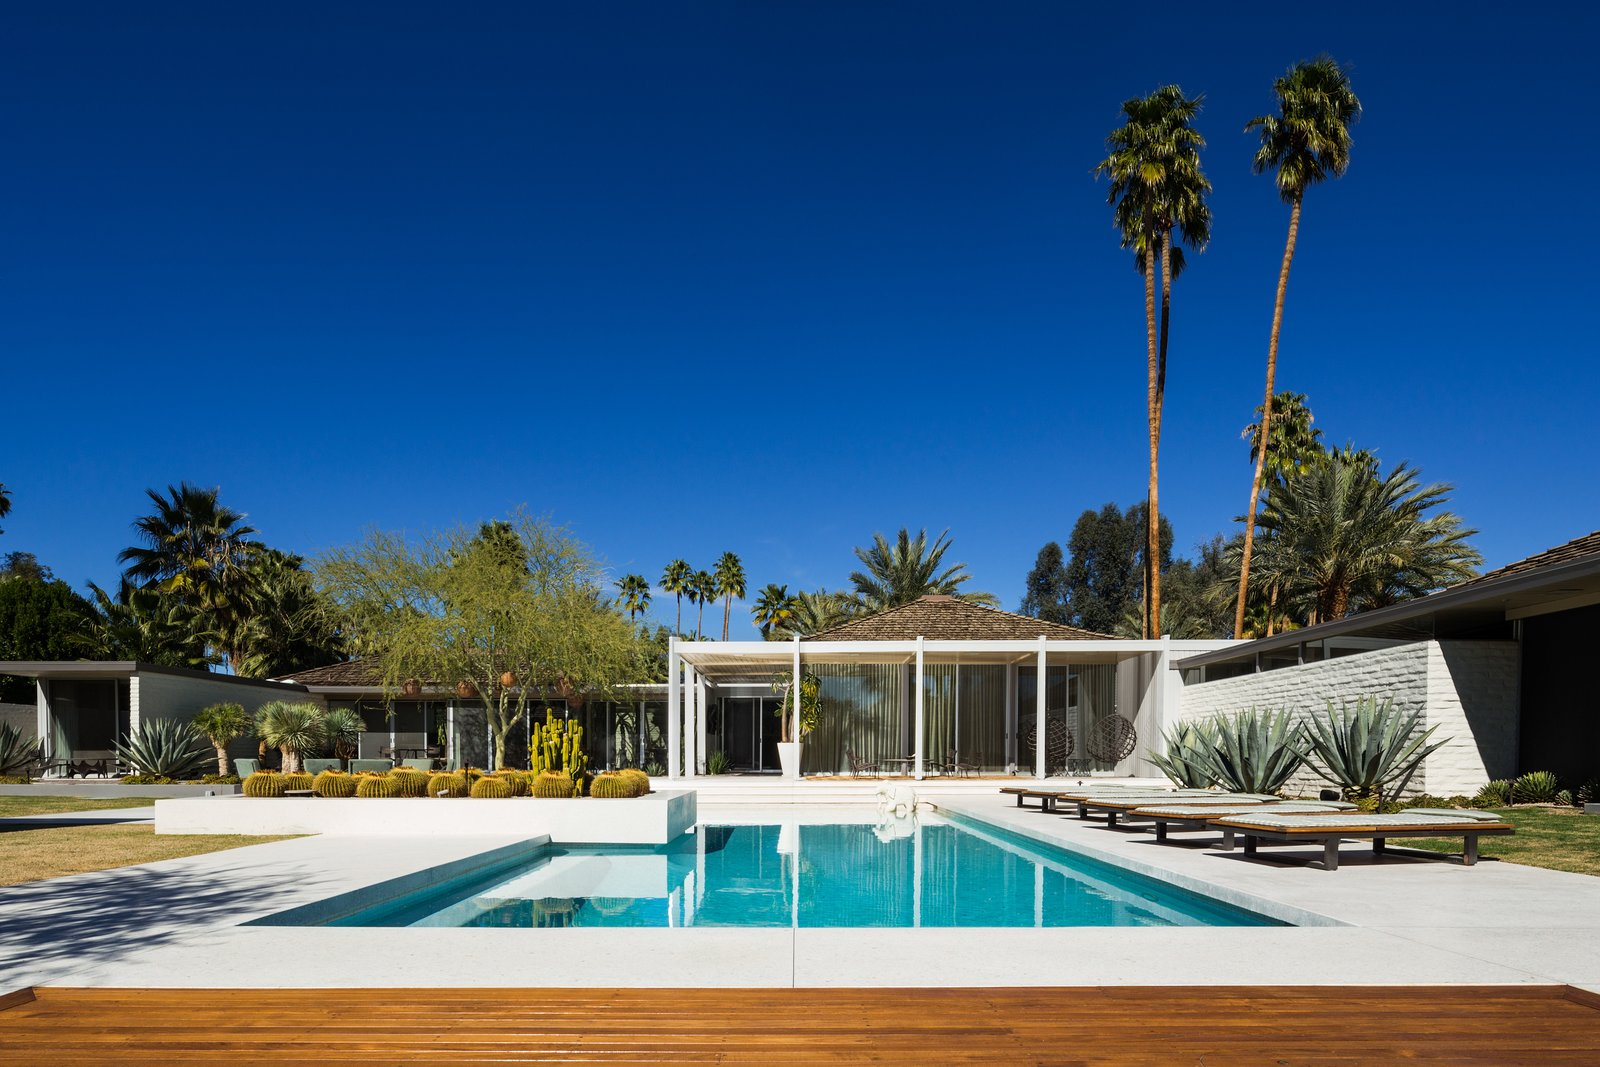 Photo 2 Of 10 In 10 Things You Shouldn T Miss At Modernism Week In Palm Springs Dwell